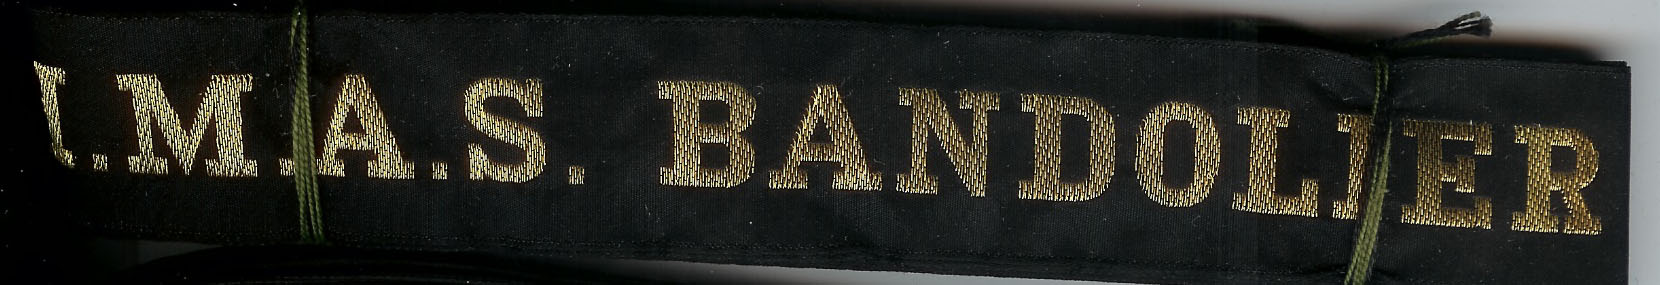 HMAS BANDOLIER' - RAN Tally Band